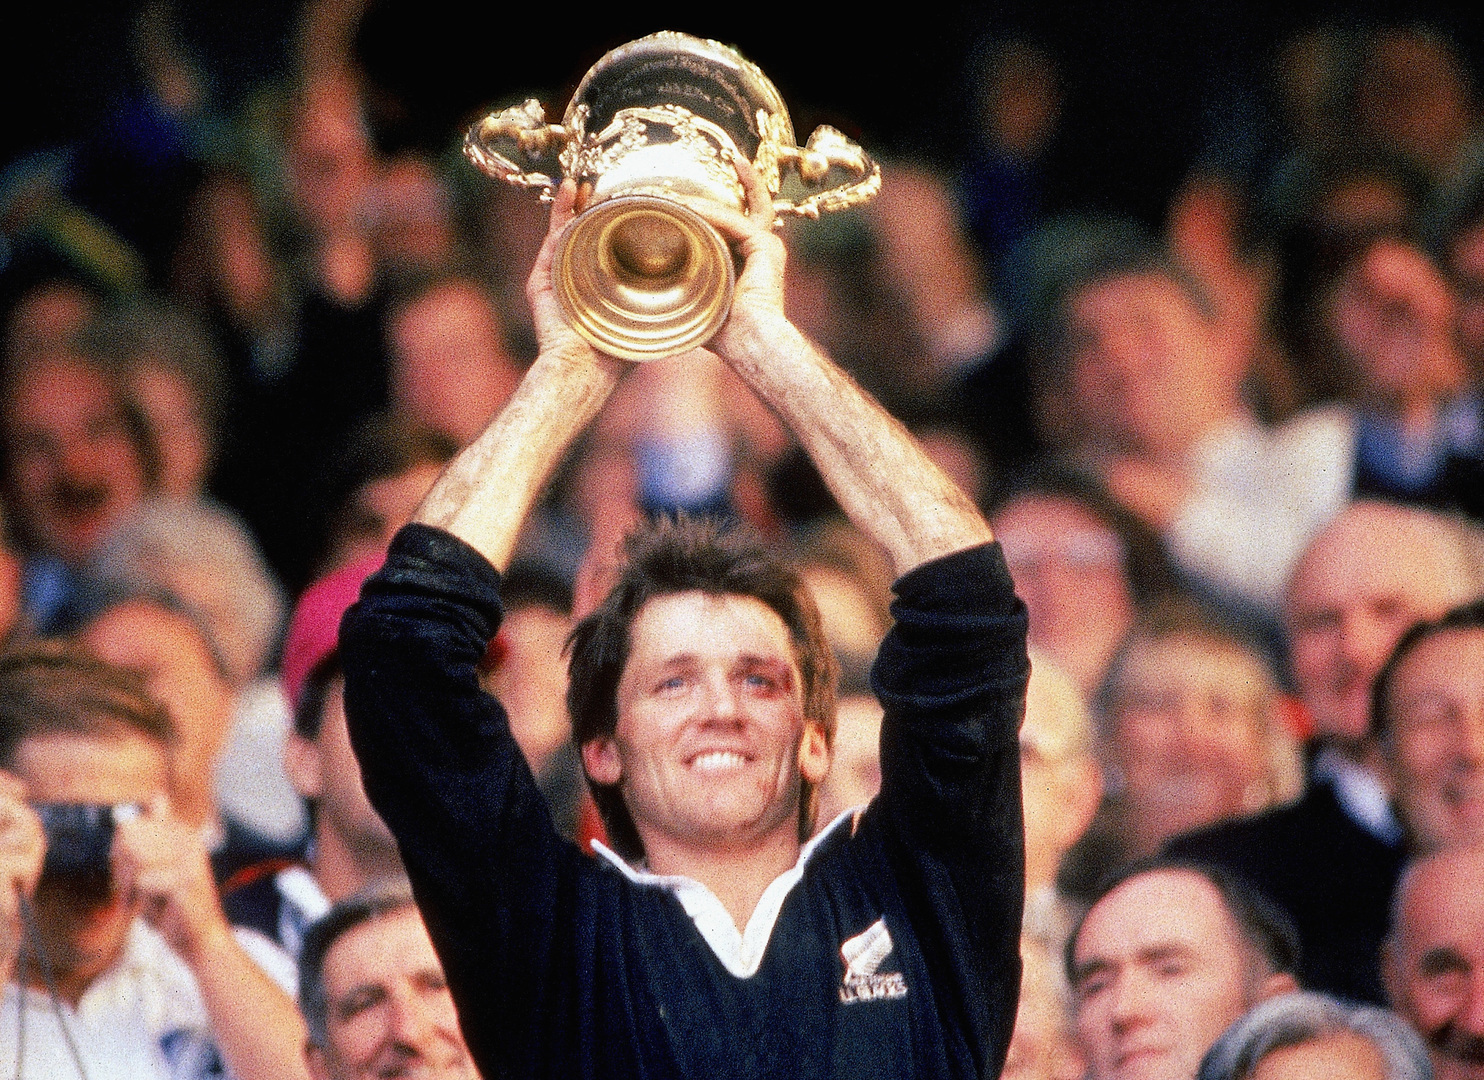 AUCKLAND, NEW ZEALAND - JUNE 20:  David Kirk of New Zealand lifts the Willam Webb Ellis Trophy after  the 1987 Rugby World Cup Final match between New Zealand and France at Eden Park on June 20, 1987 in Auckland, New Zealand. (Photo by Ross Land/Getty Images)